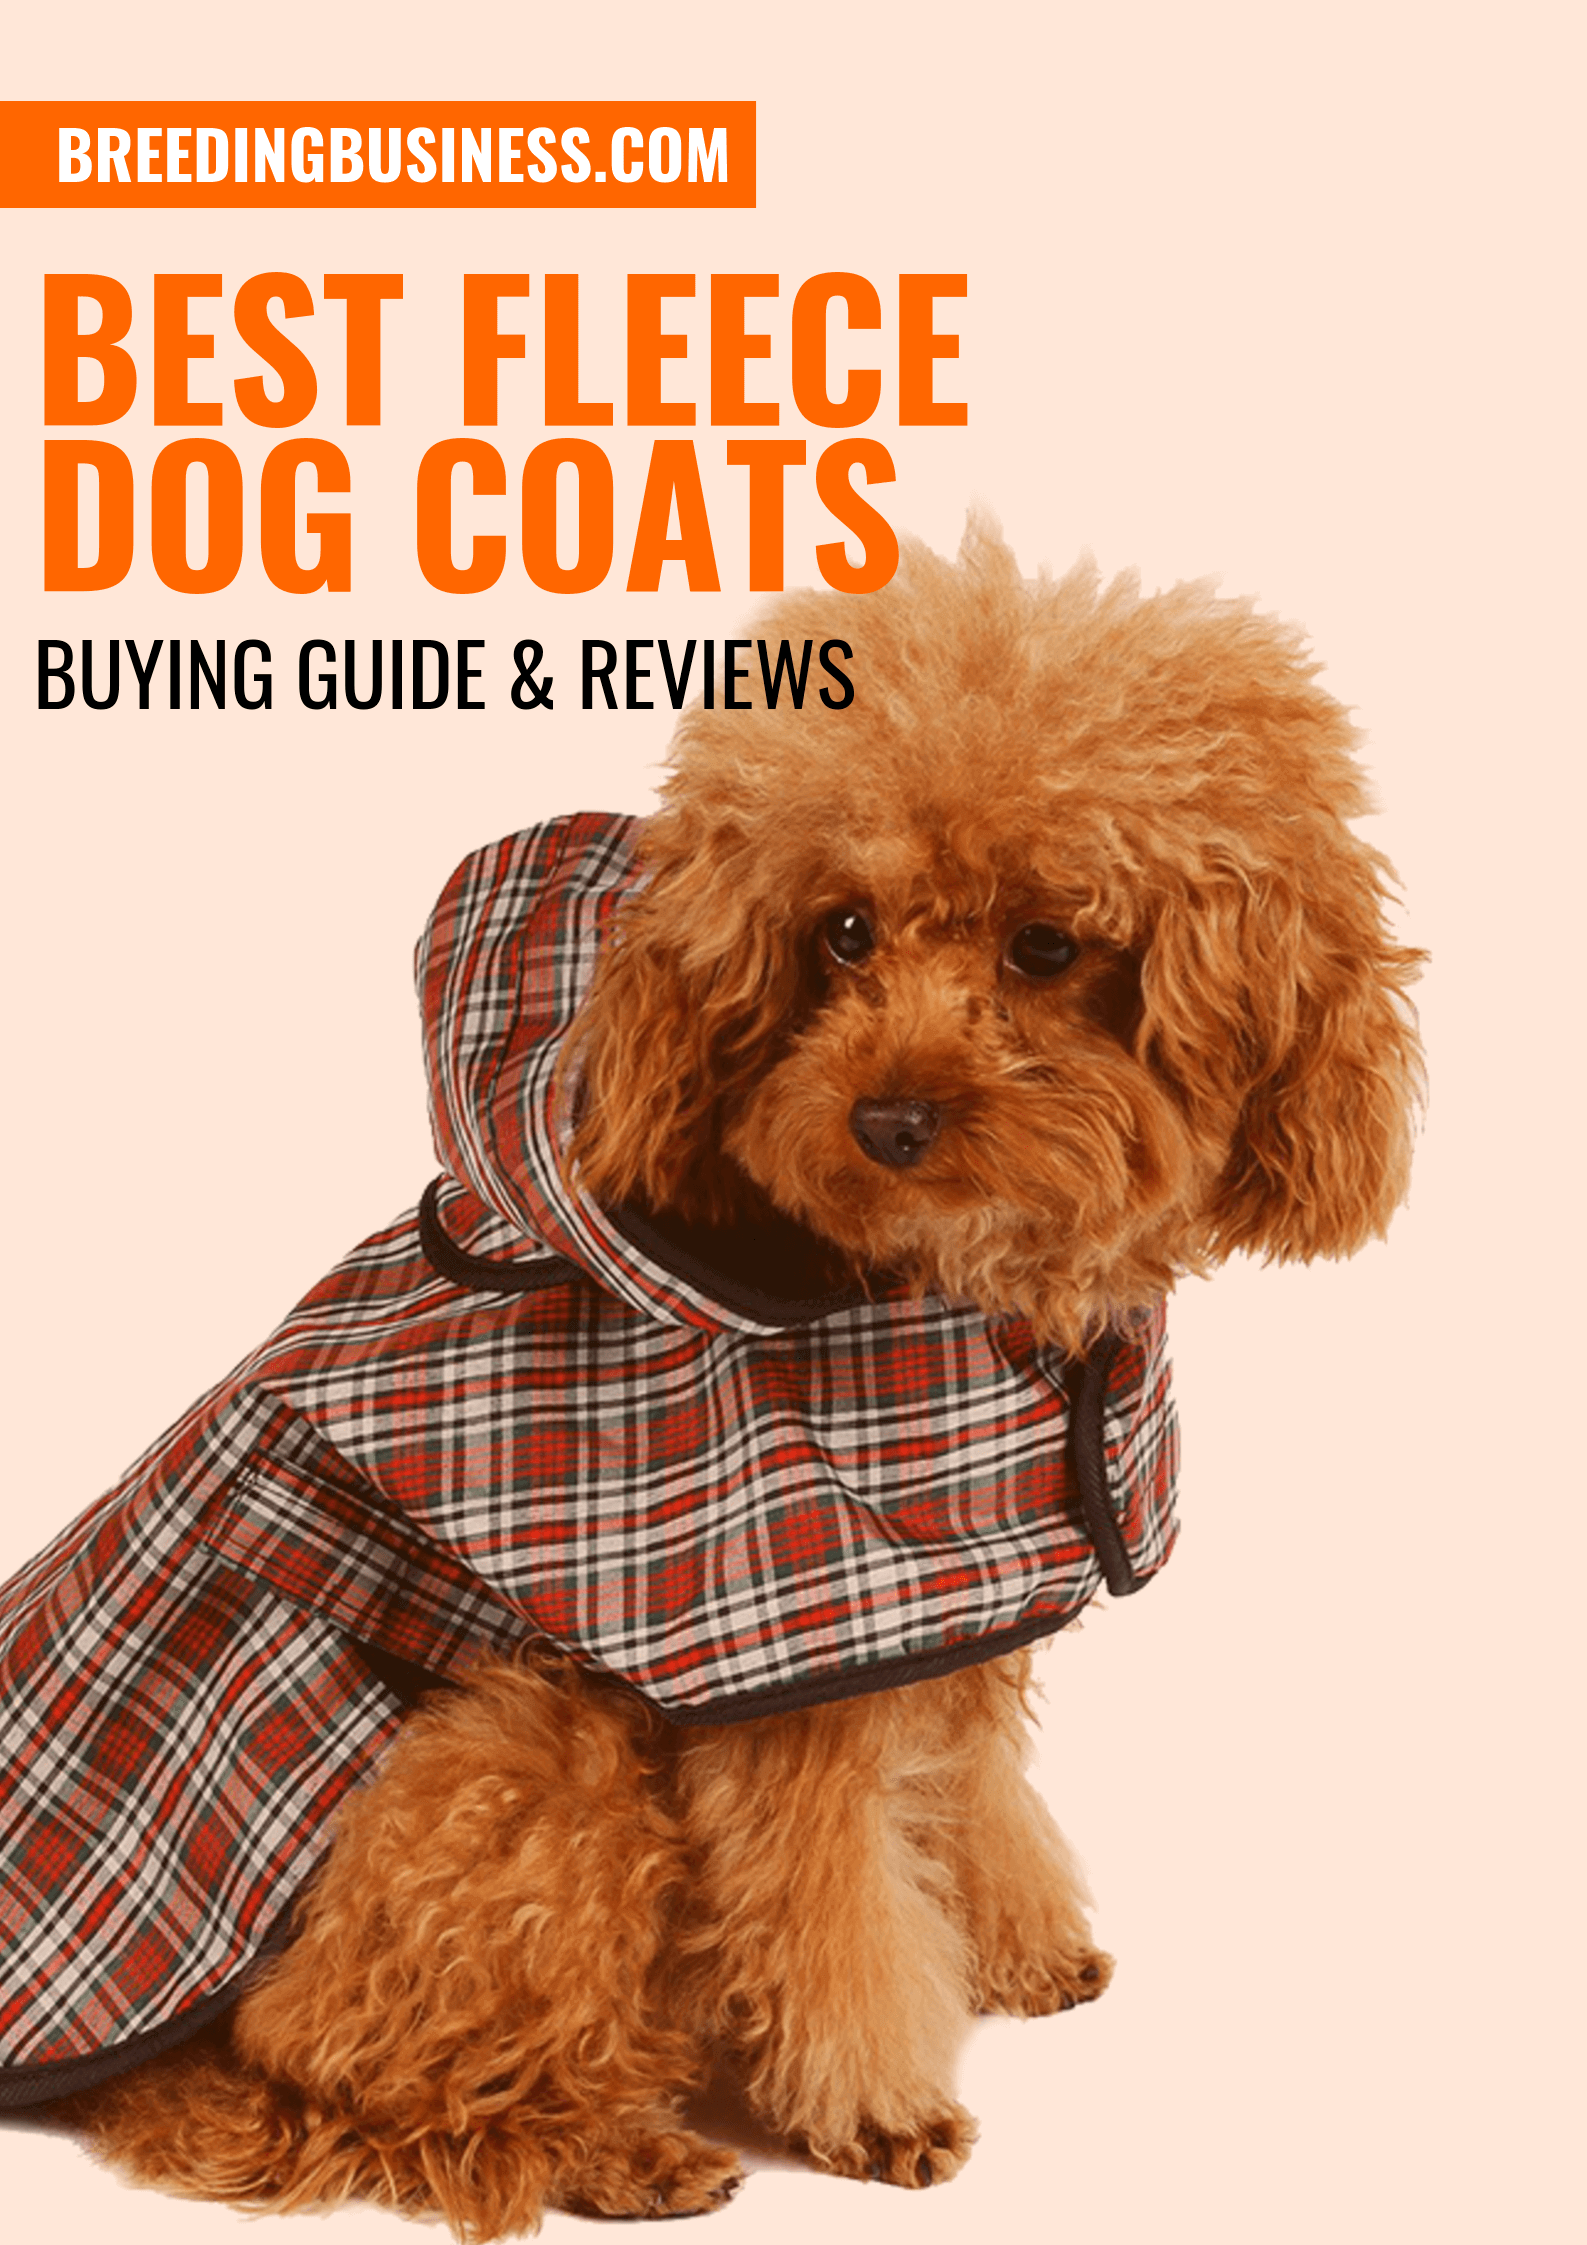 Guide – Wintertime Fleece Dog Coats